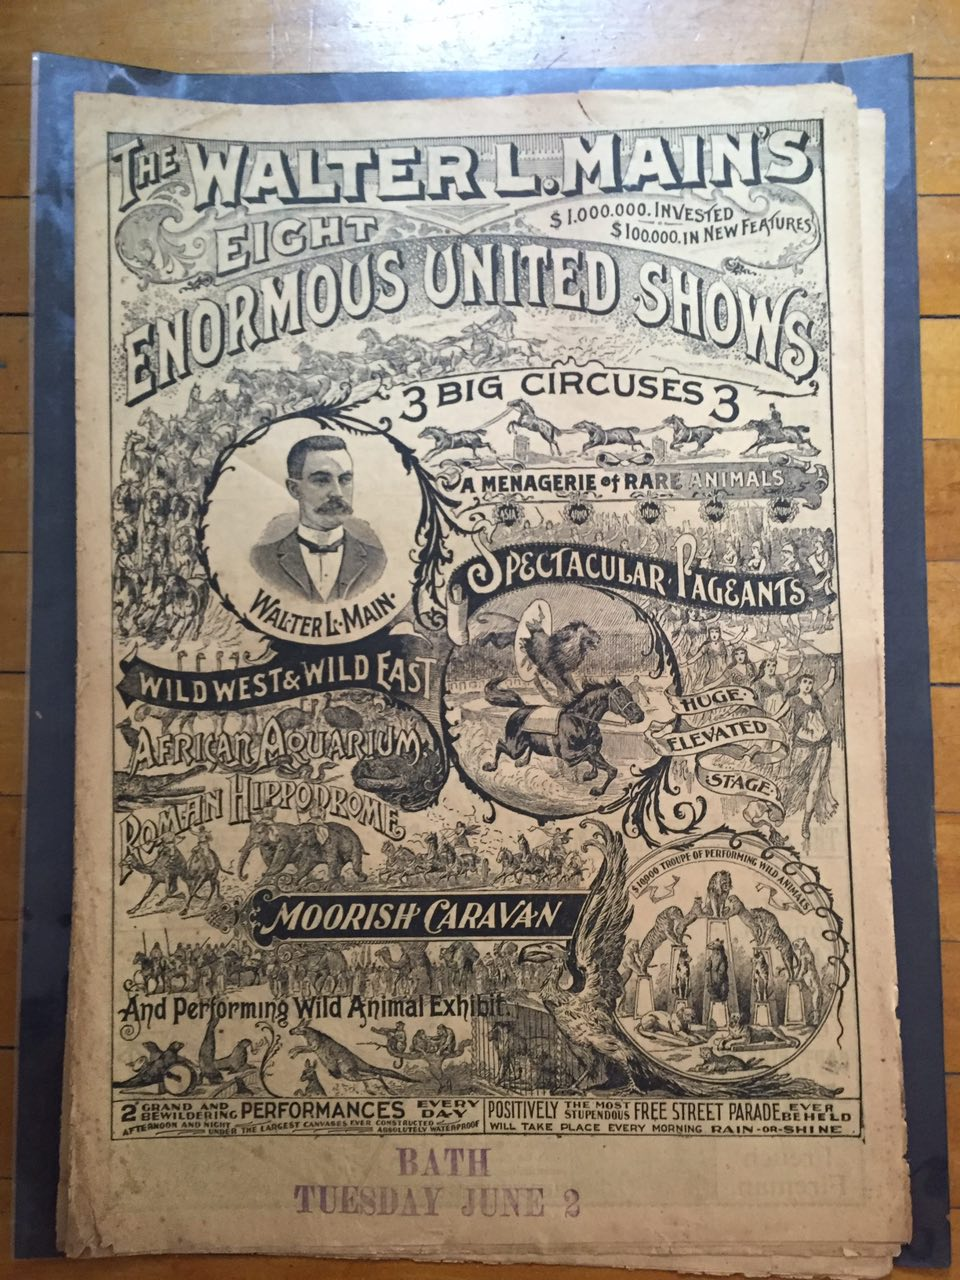 Walter L. Main Circus promotional poster